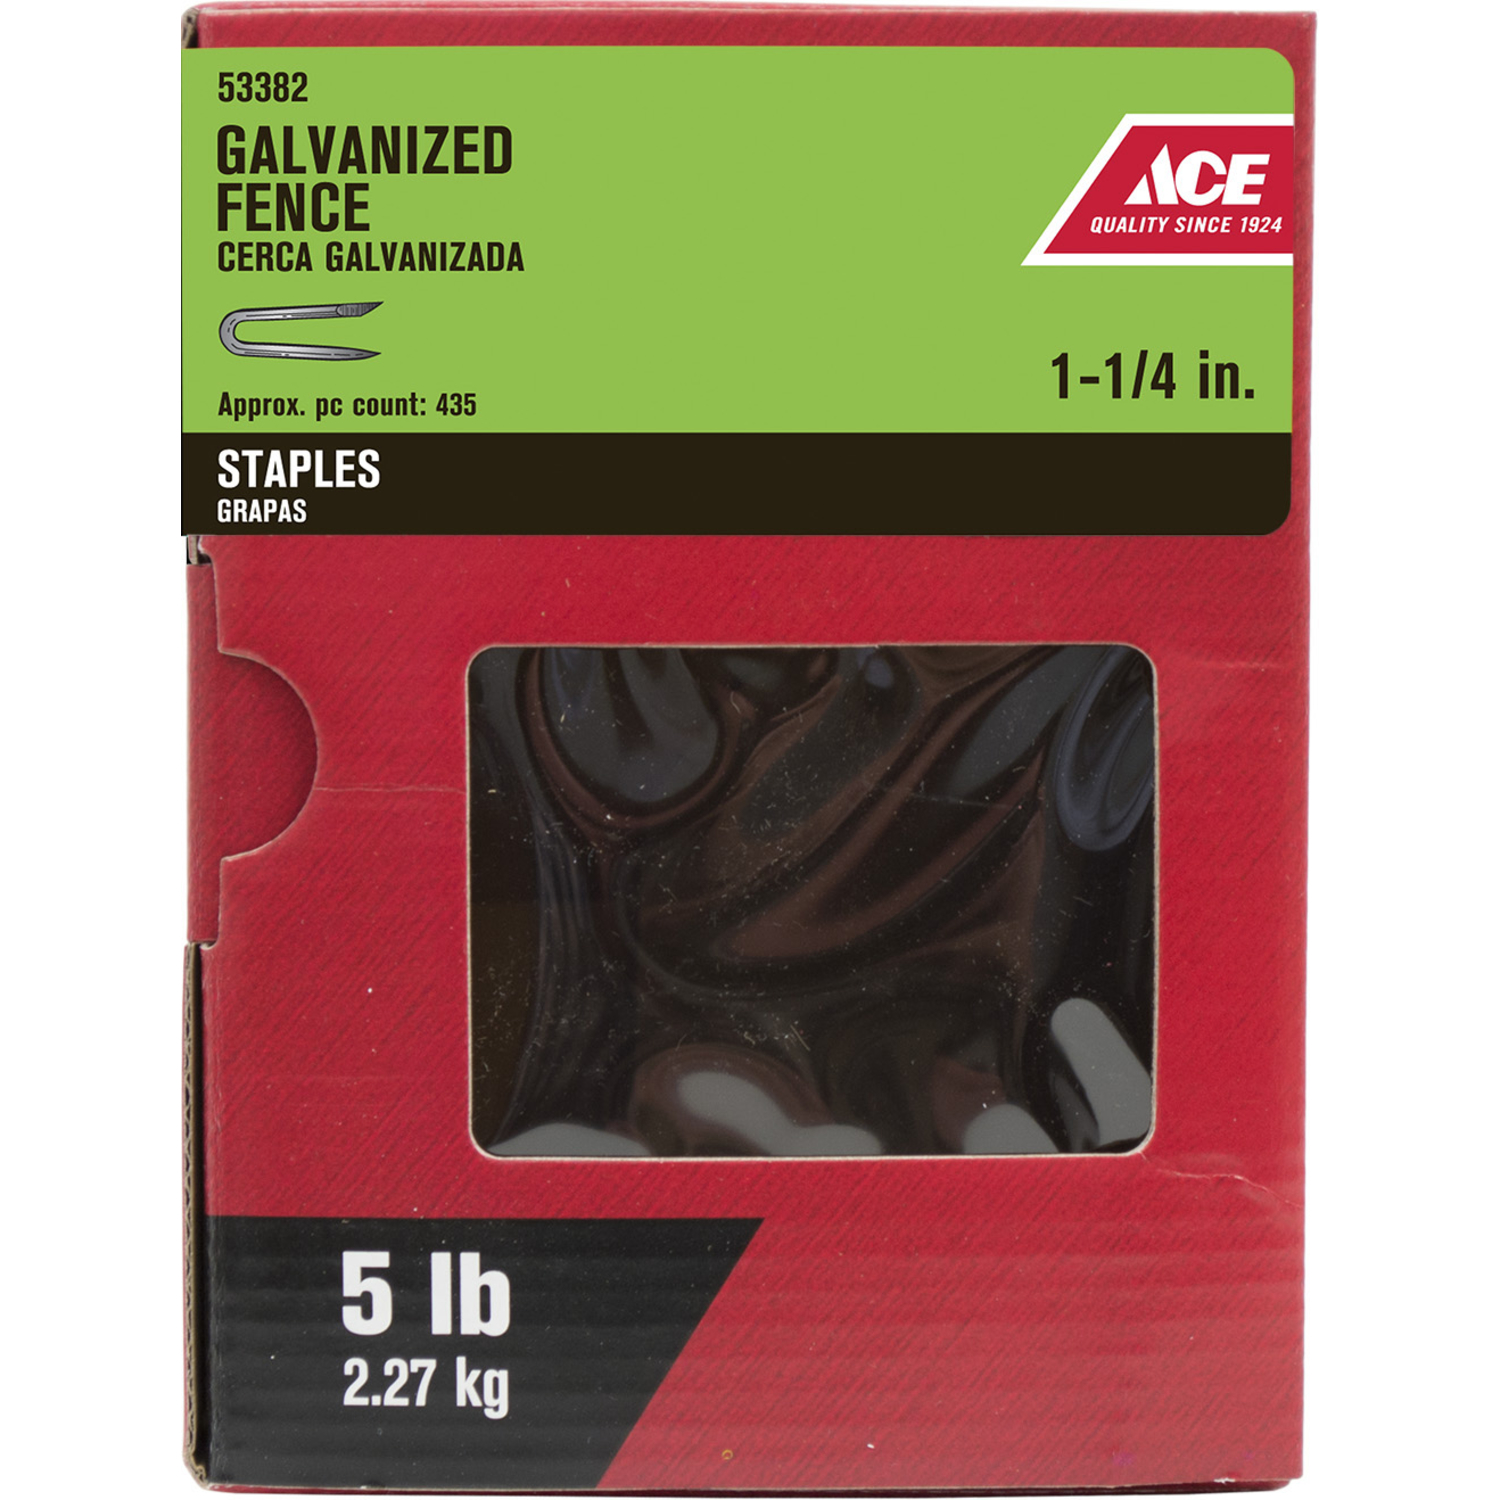 Ace  1-1/4 in. L Fence Staples  Galvanized  5 lb. Steel